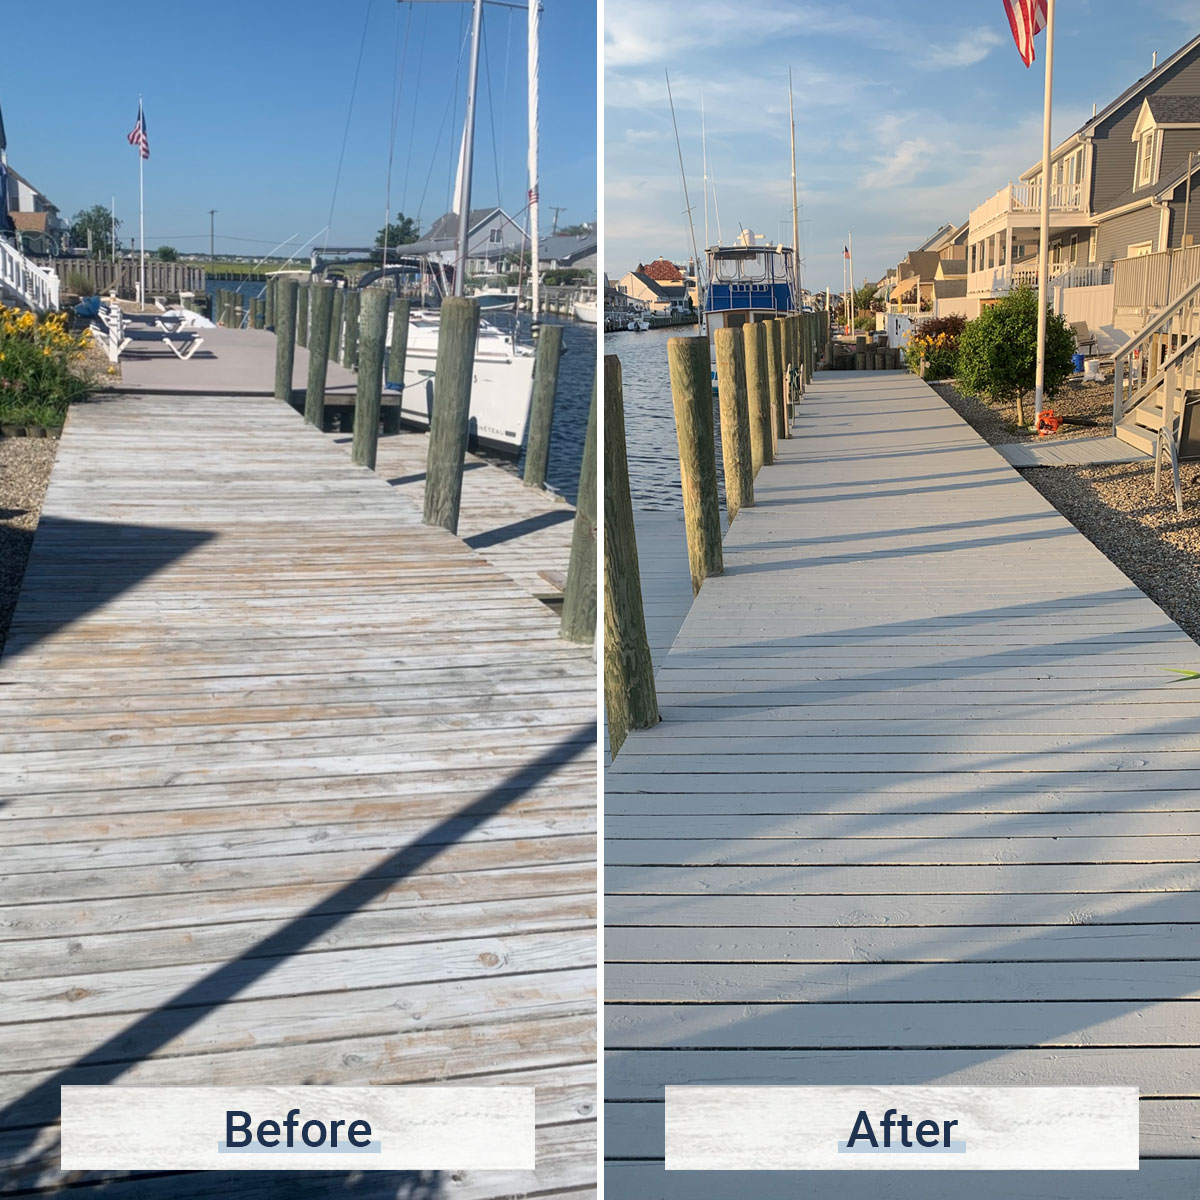 dock 4 before and after